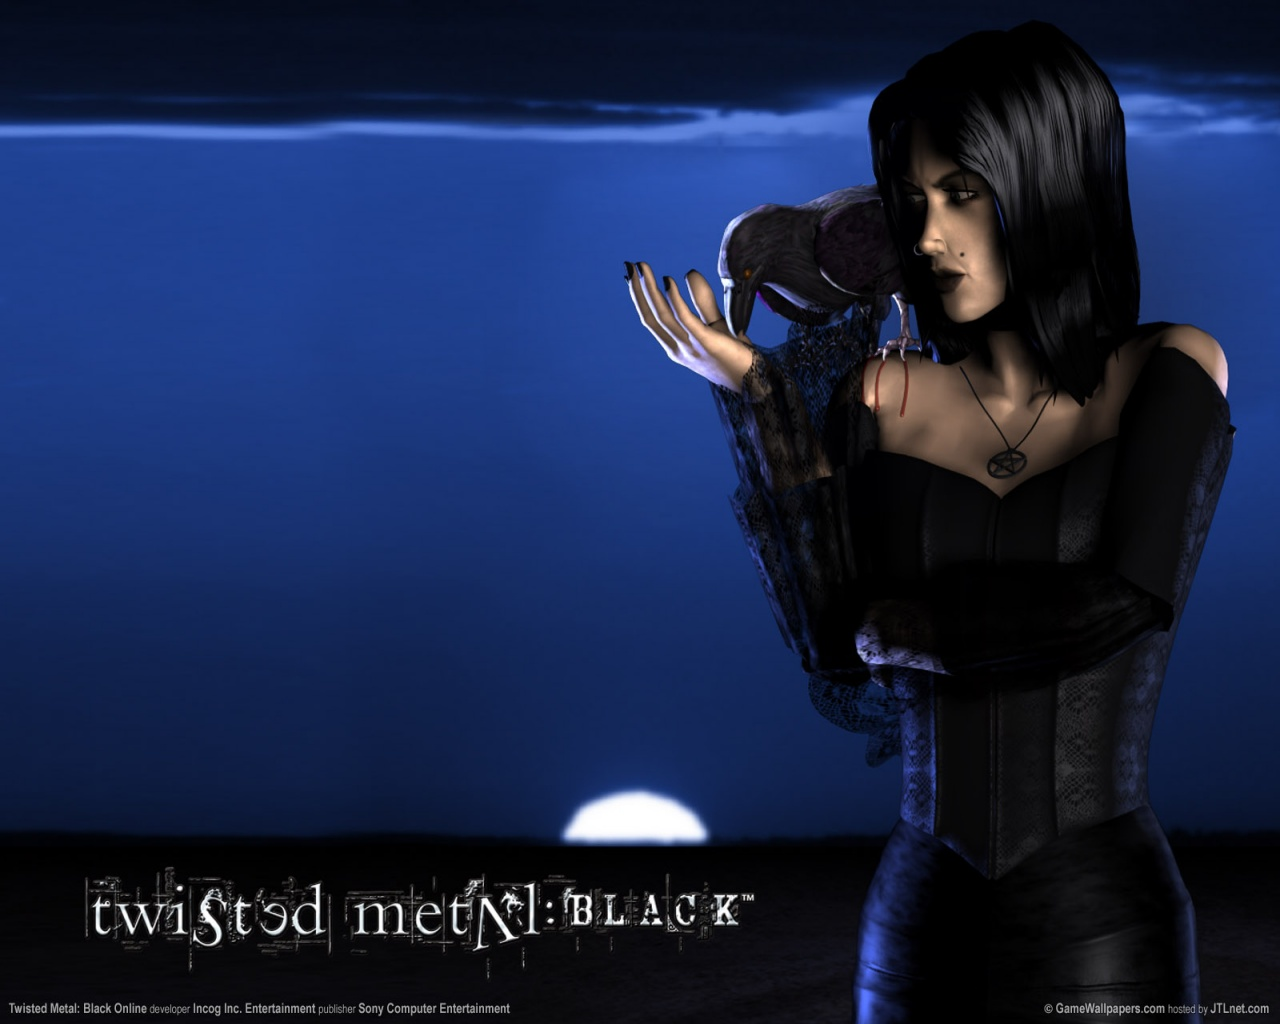 Twisted metal black clipart.